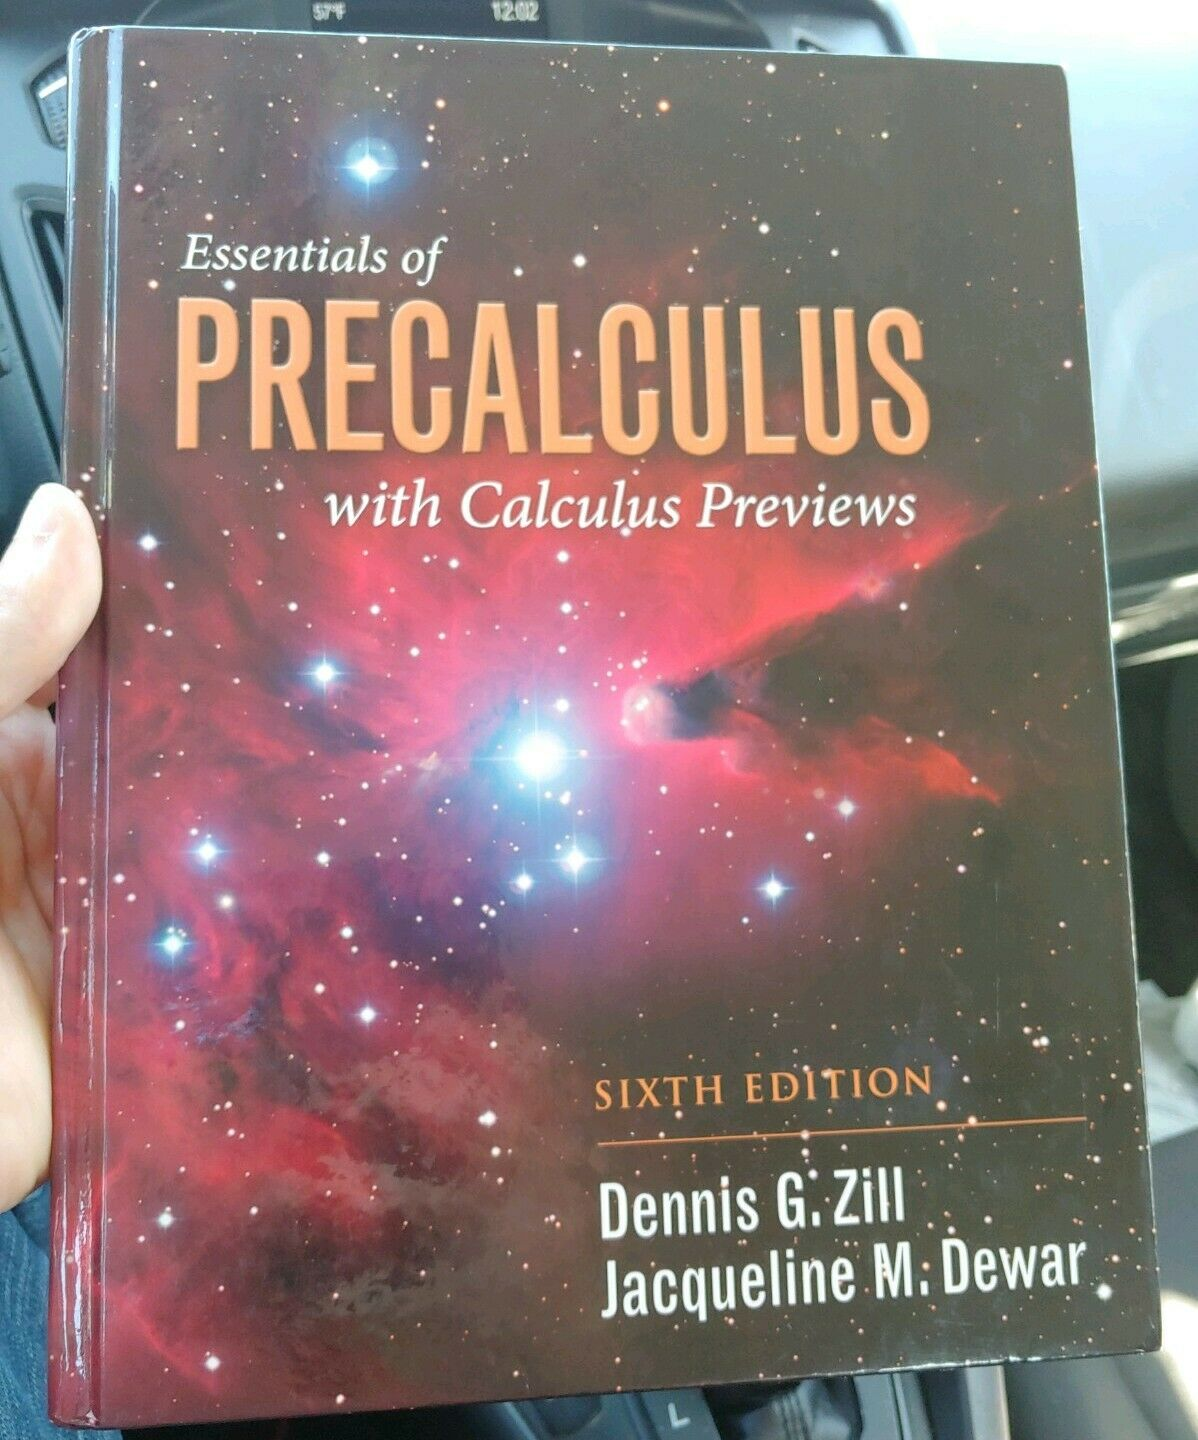 Essentials Of Precalculus With Calculus Previews By Dennis G Zill And Jacqueline M Dewar 2014 Hardcover